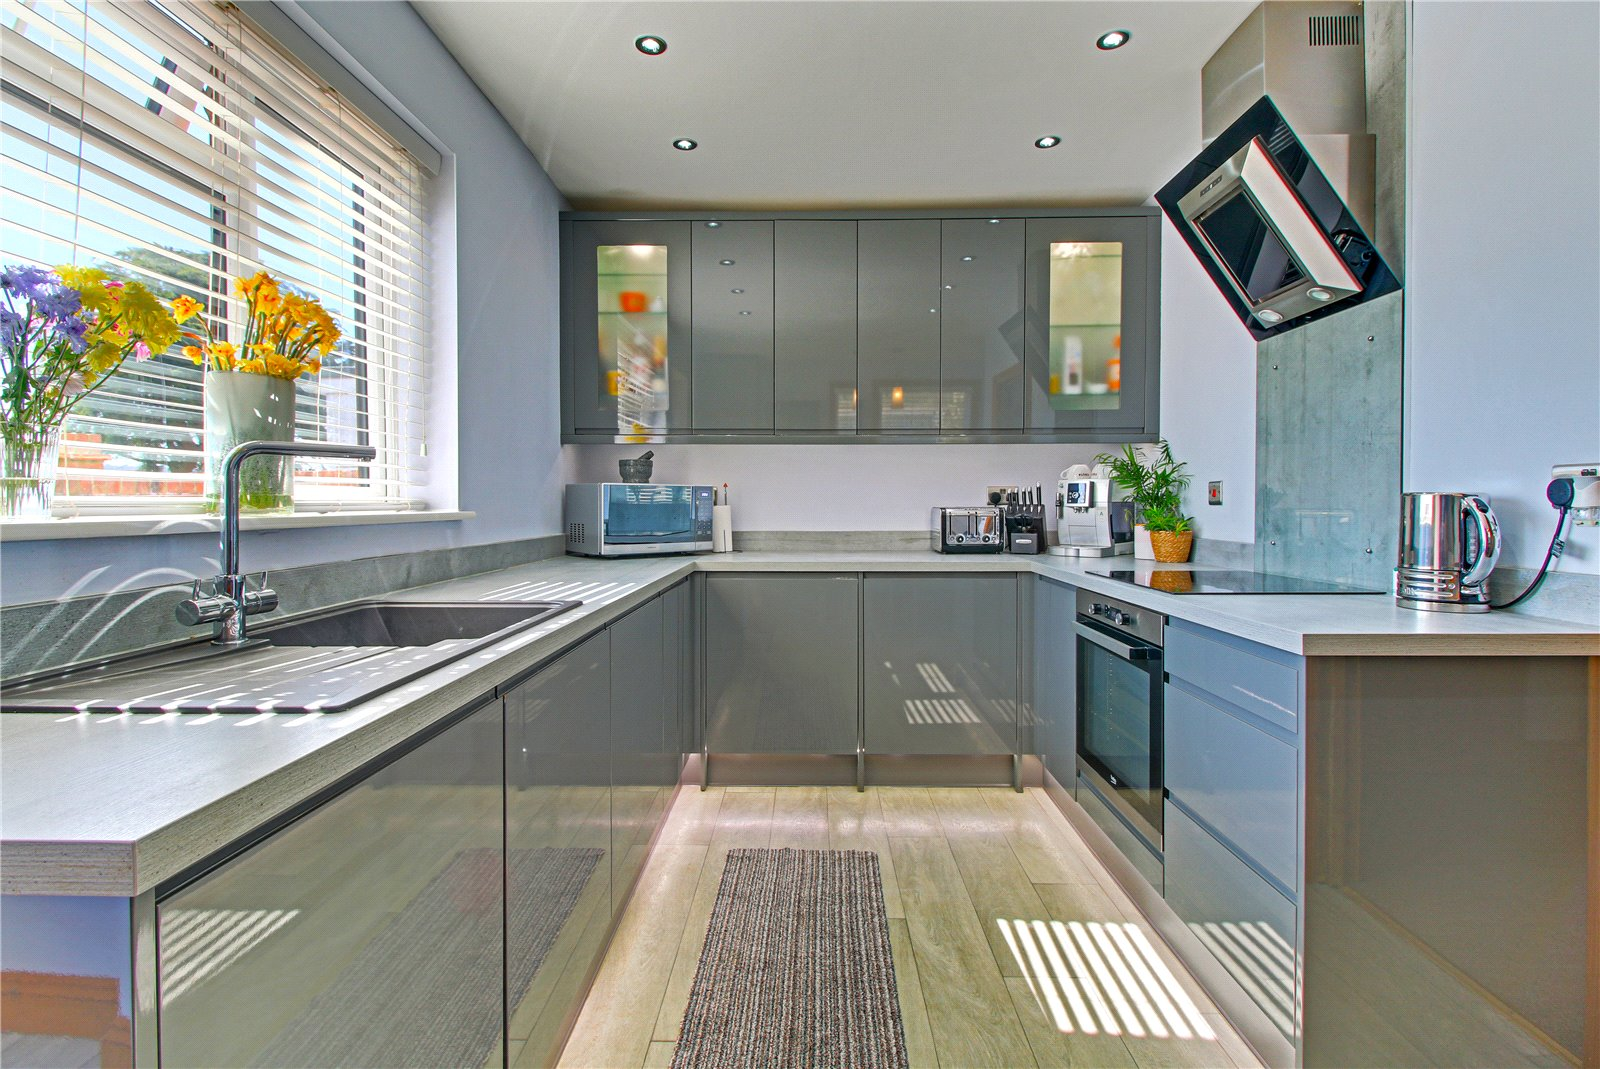 3 bed house for sale in Upper Fant Road, Maidstone, ME16